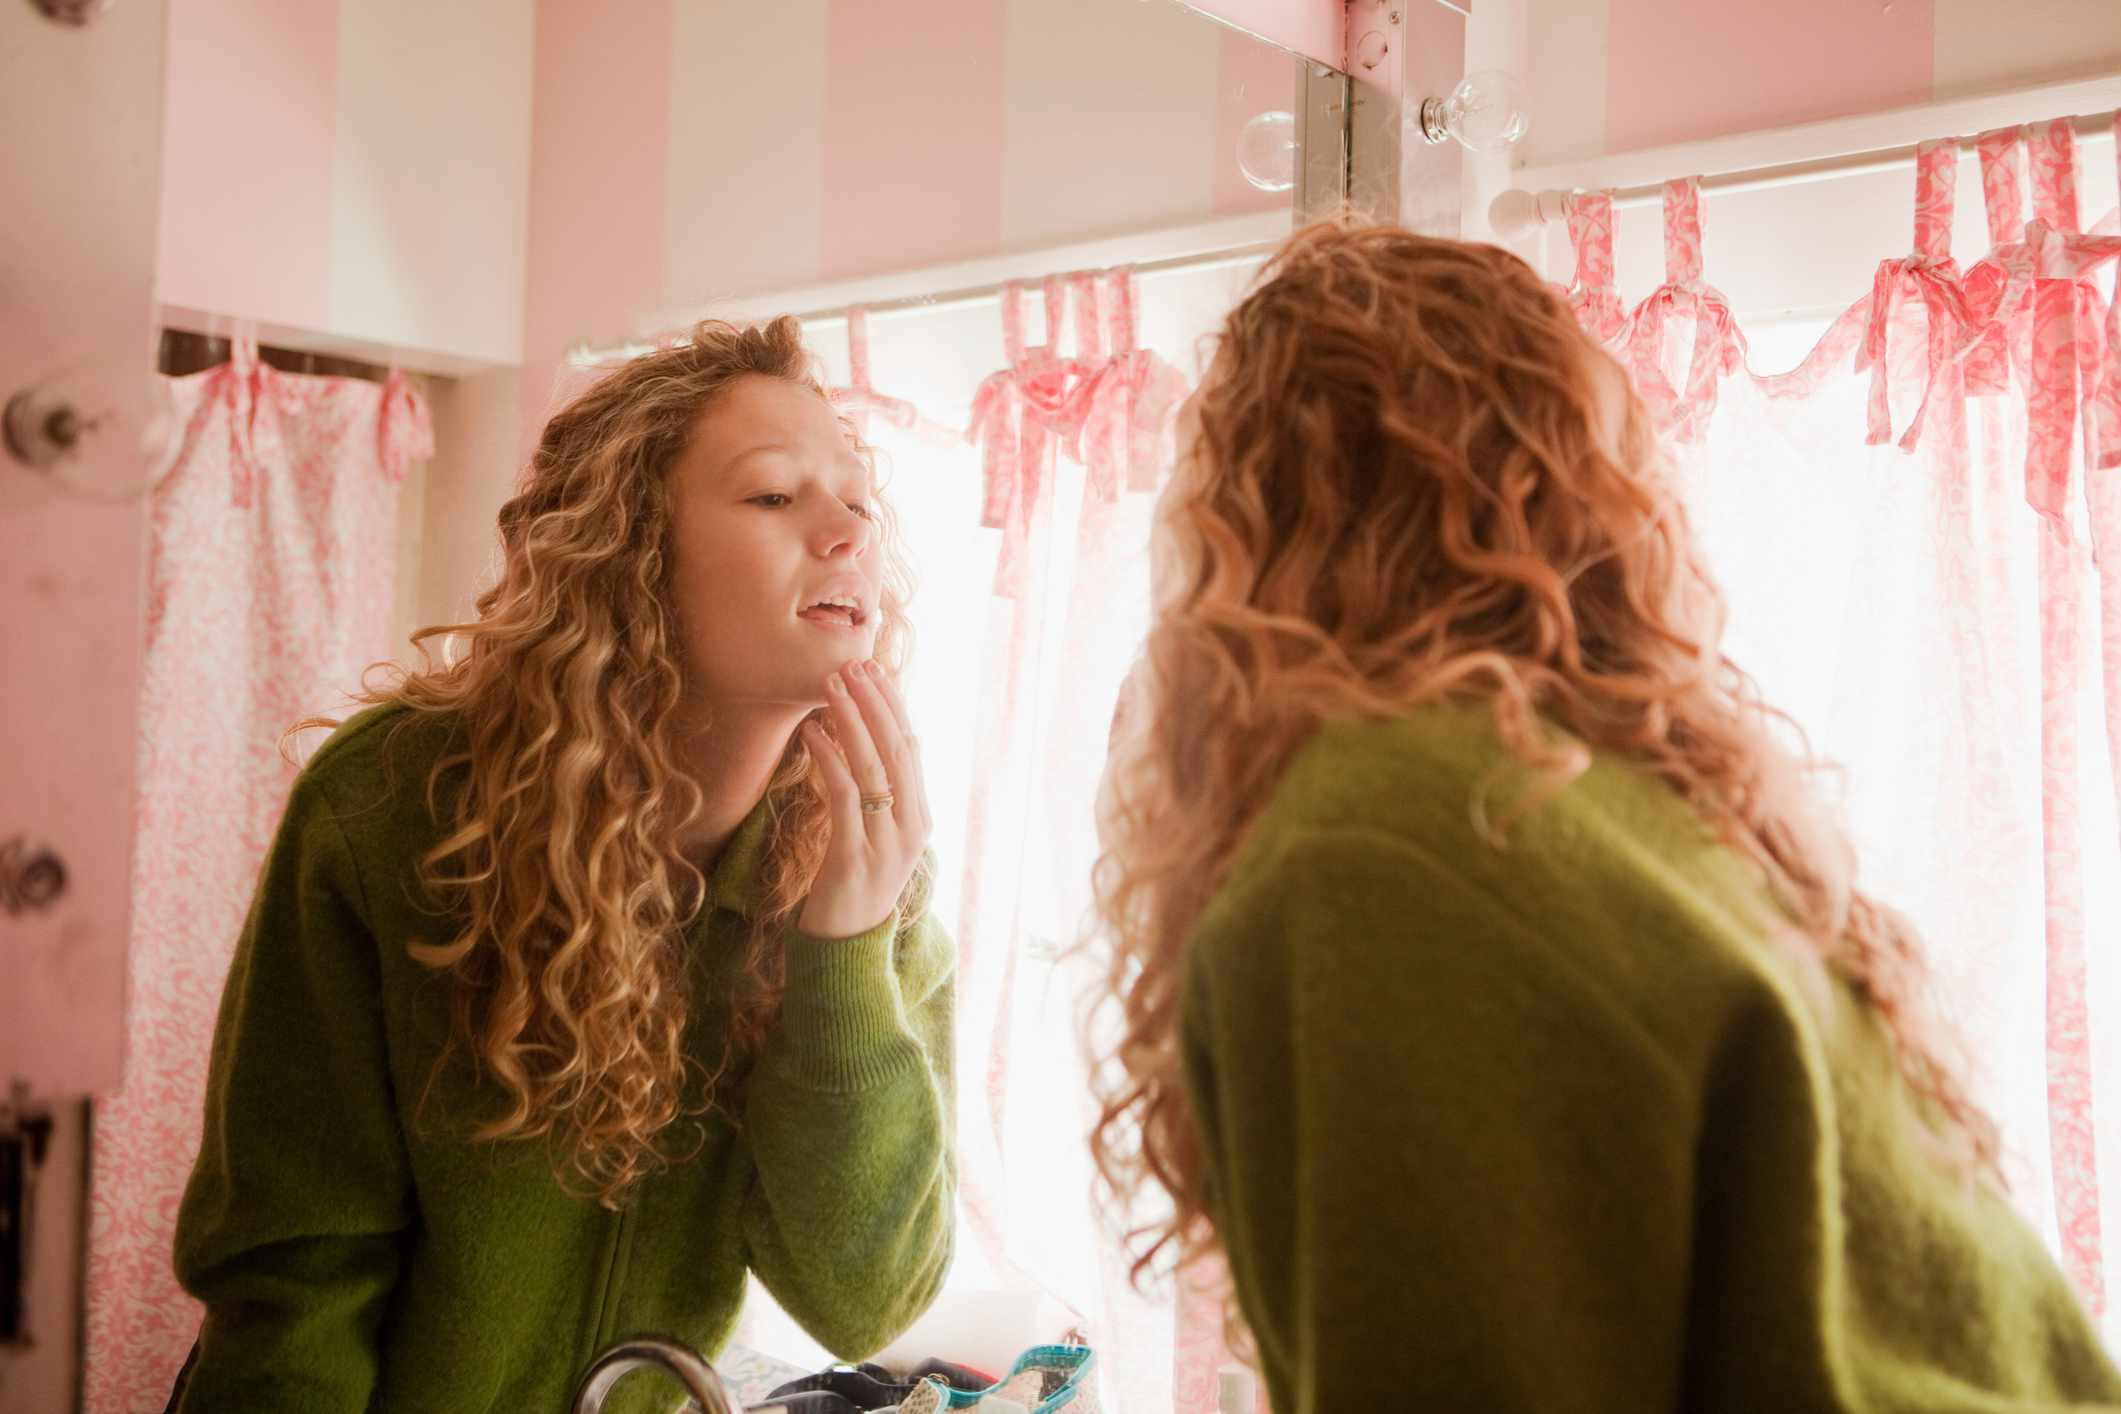 Young woman examining her skin in the bathroom mirror